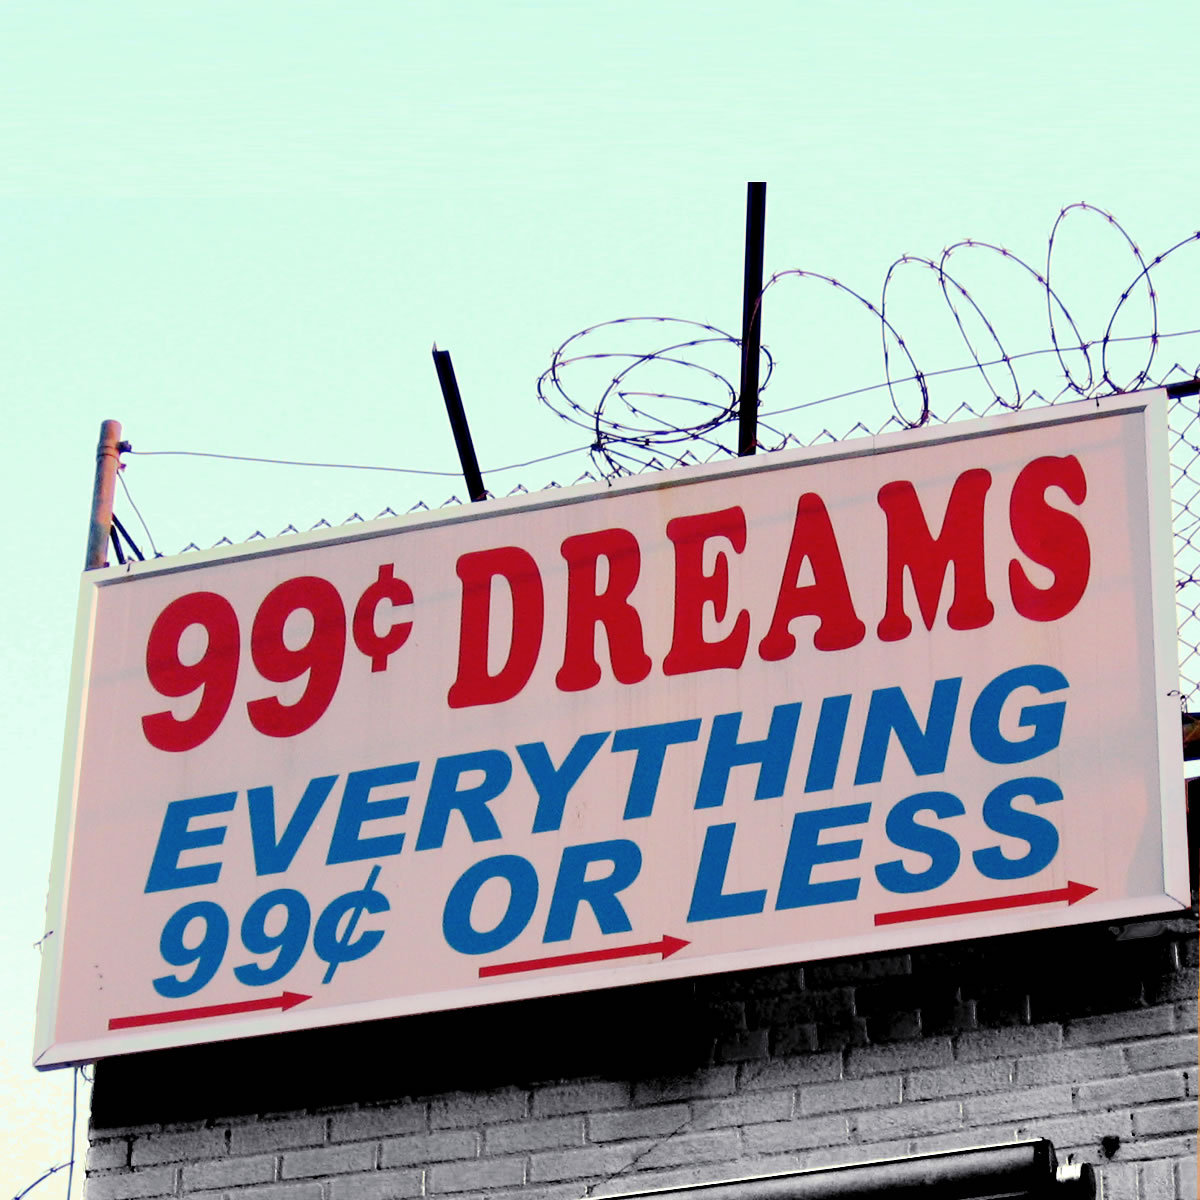 $.99 Dreams album art work